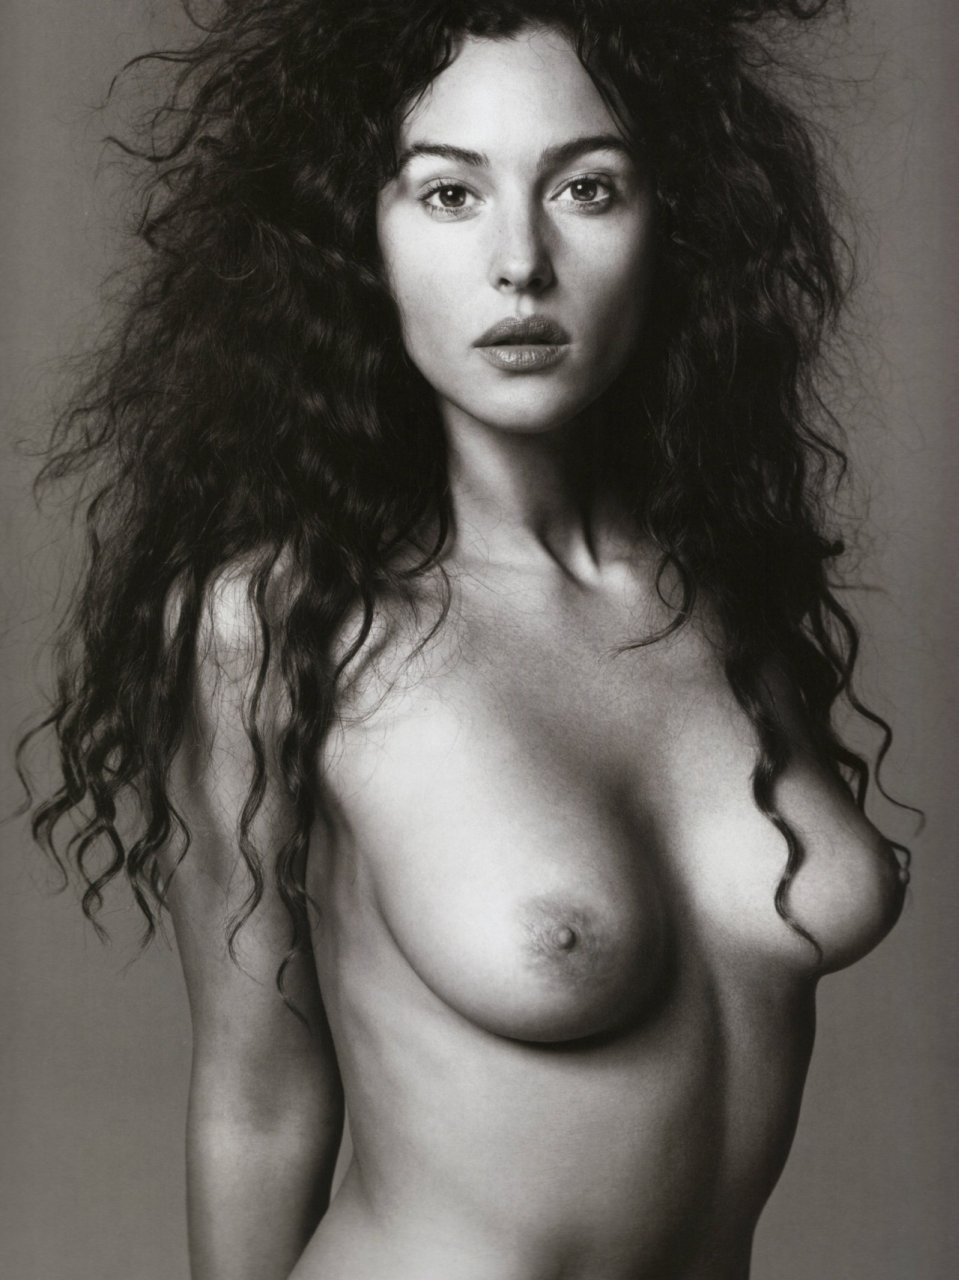 Nude photos of monica belluci